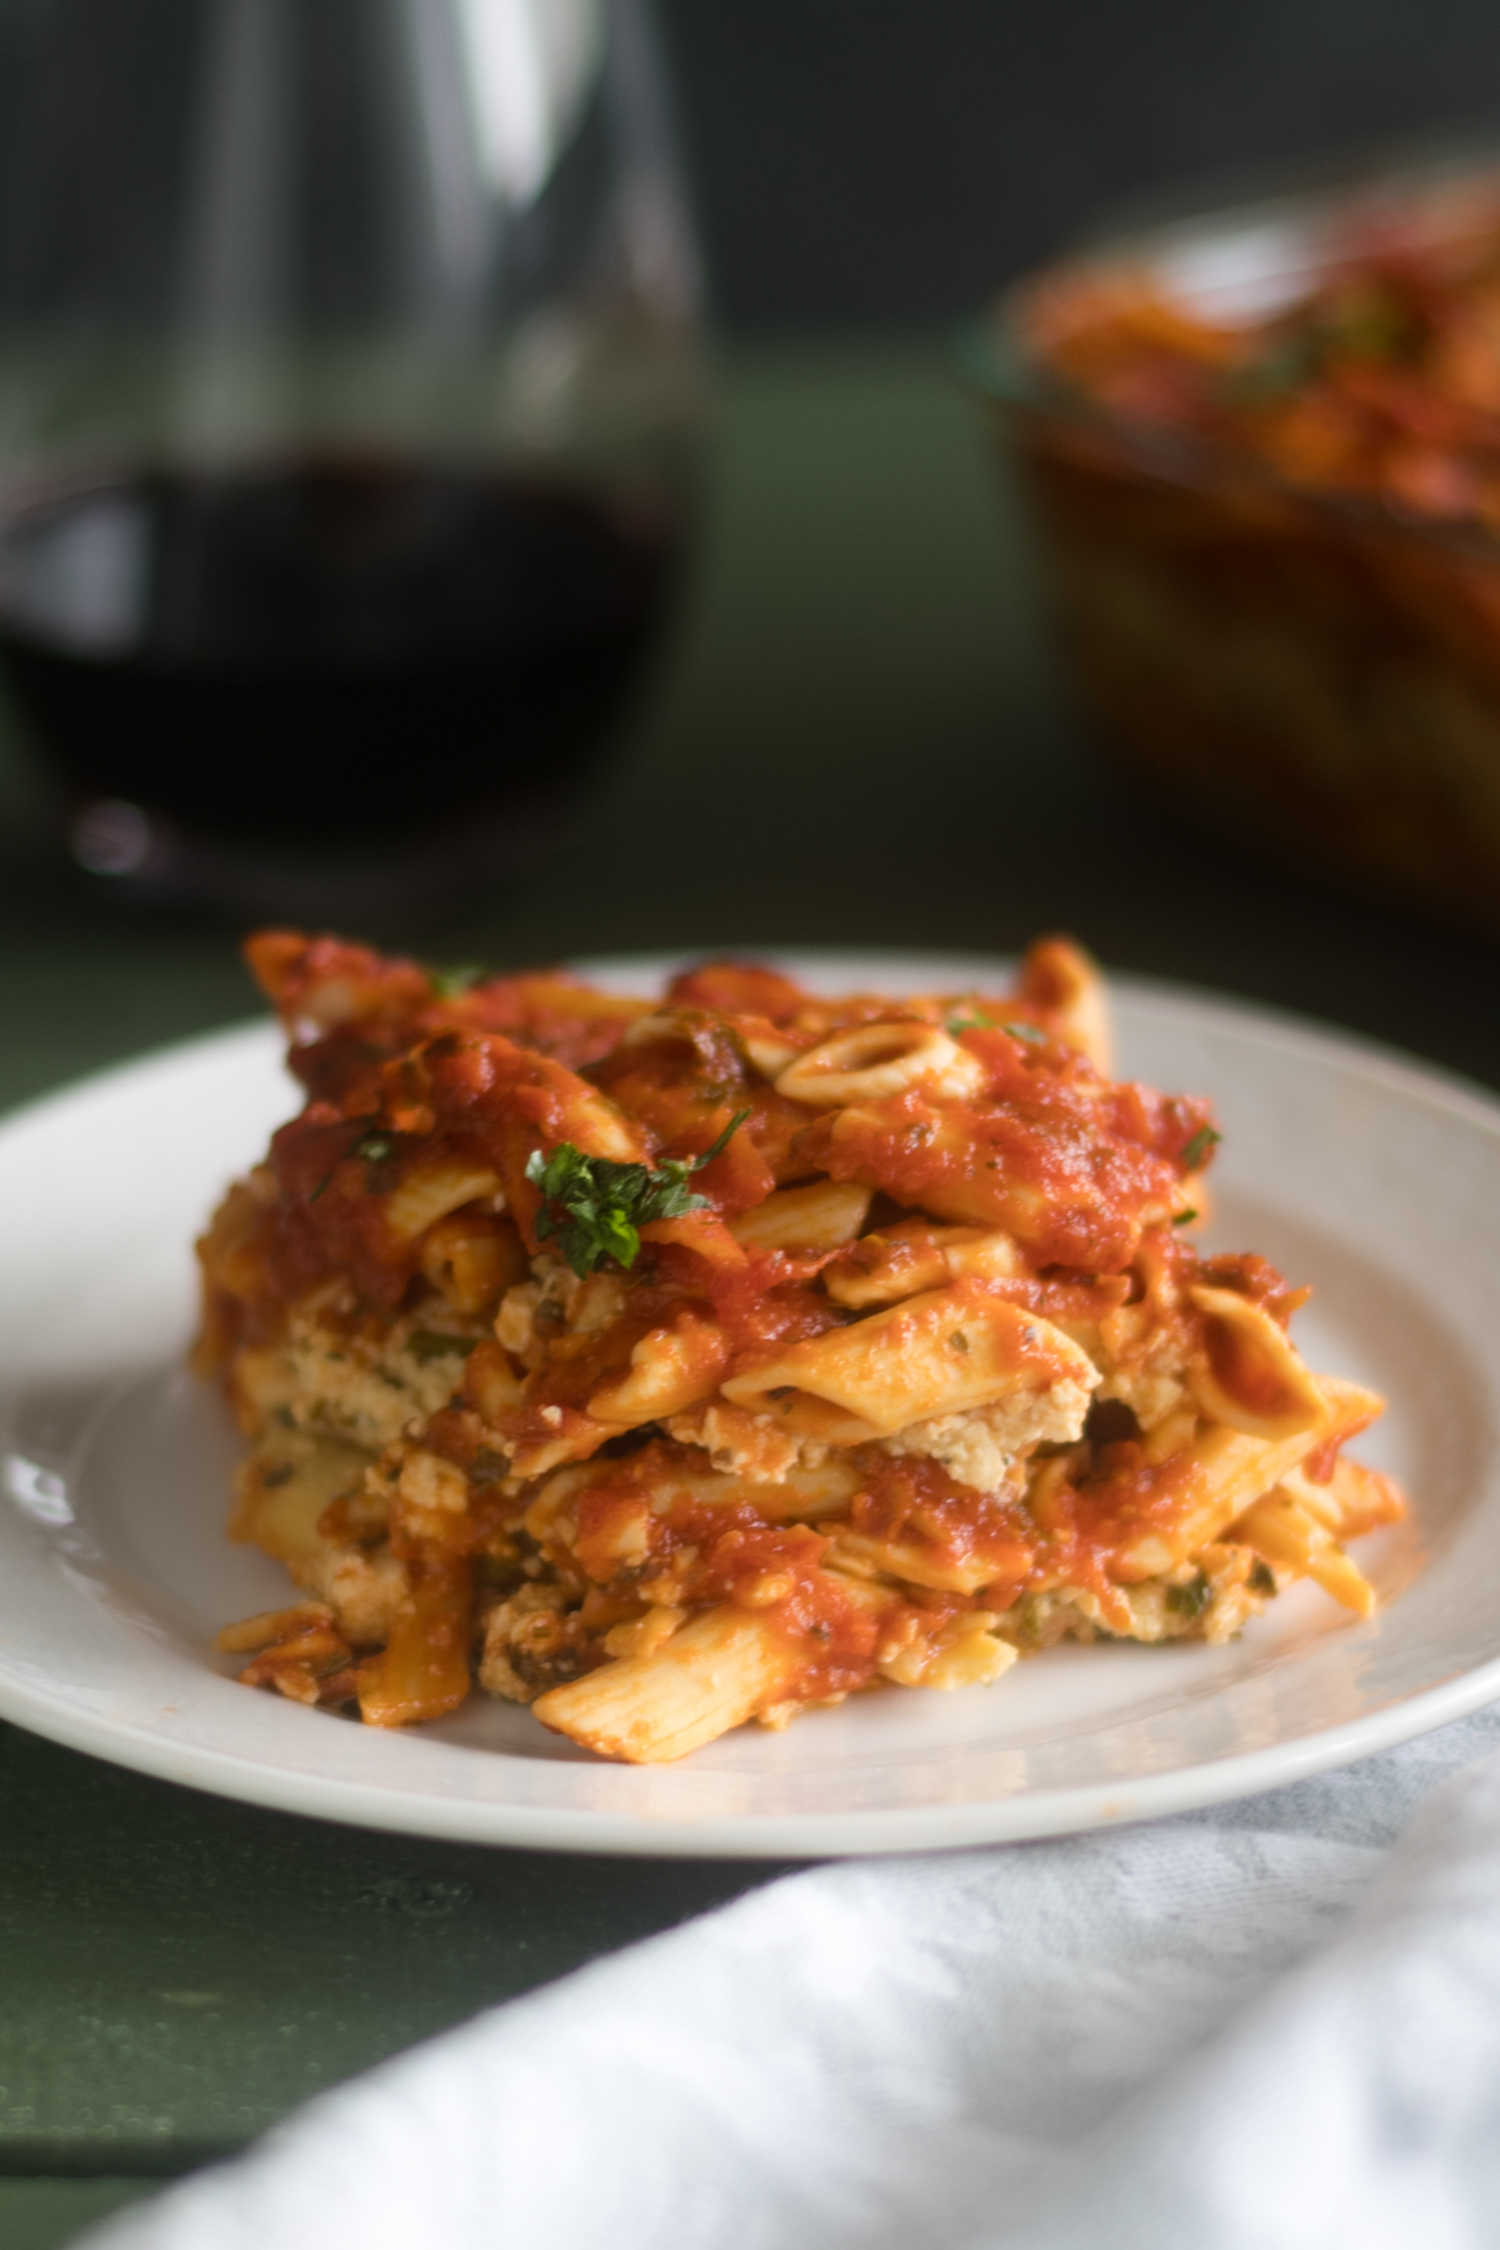 This Vegan Baked Pasta with Tofu Ricotta is perfect if you are looking for an easy, budget-friendly meal that is also delicious!#vegan #pasta #recipe #easyrecipes #food #vegetarian #casserole